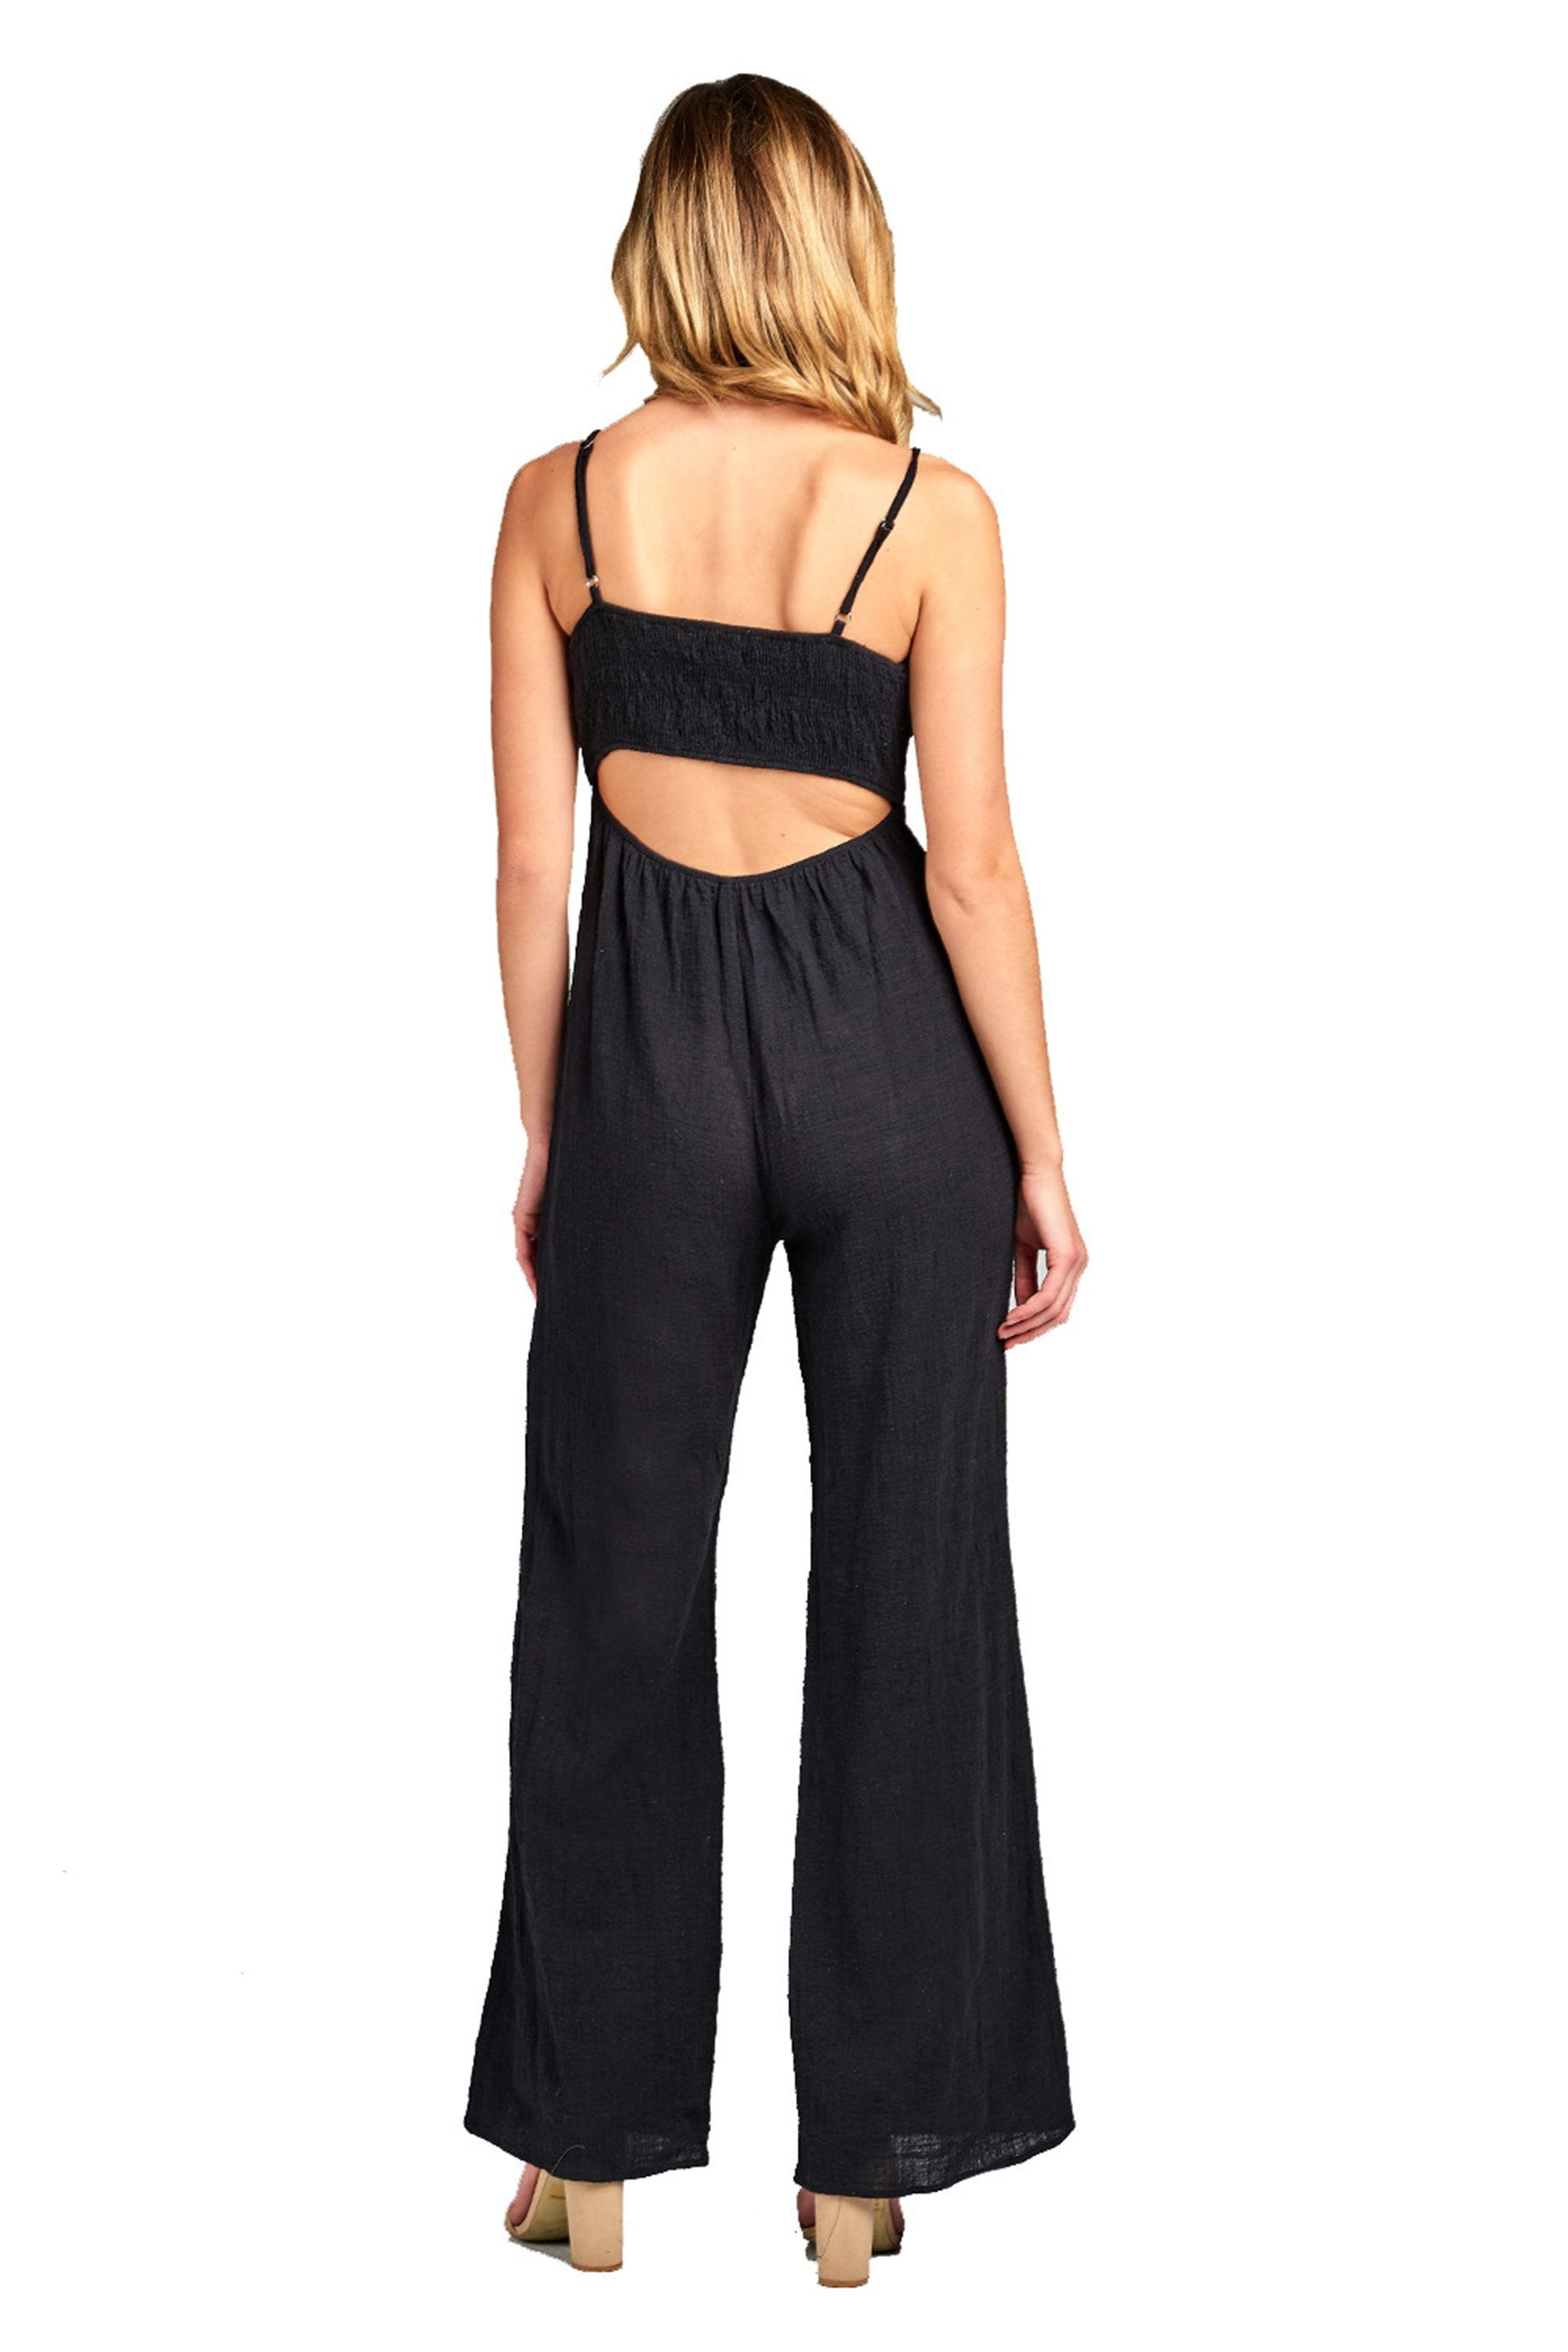 Sleeveless Cami Adjustable Straps Scoop Neckline Knotted Front Wide Leg Jumpsuit